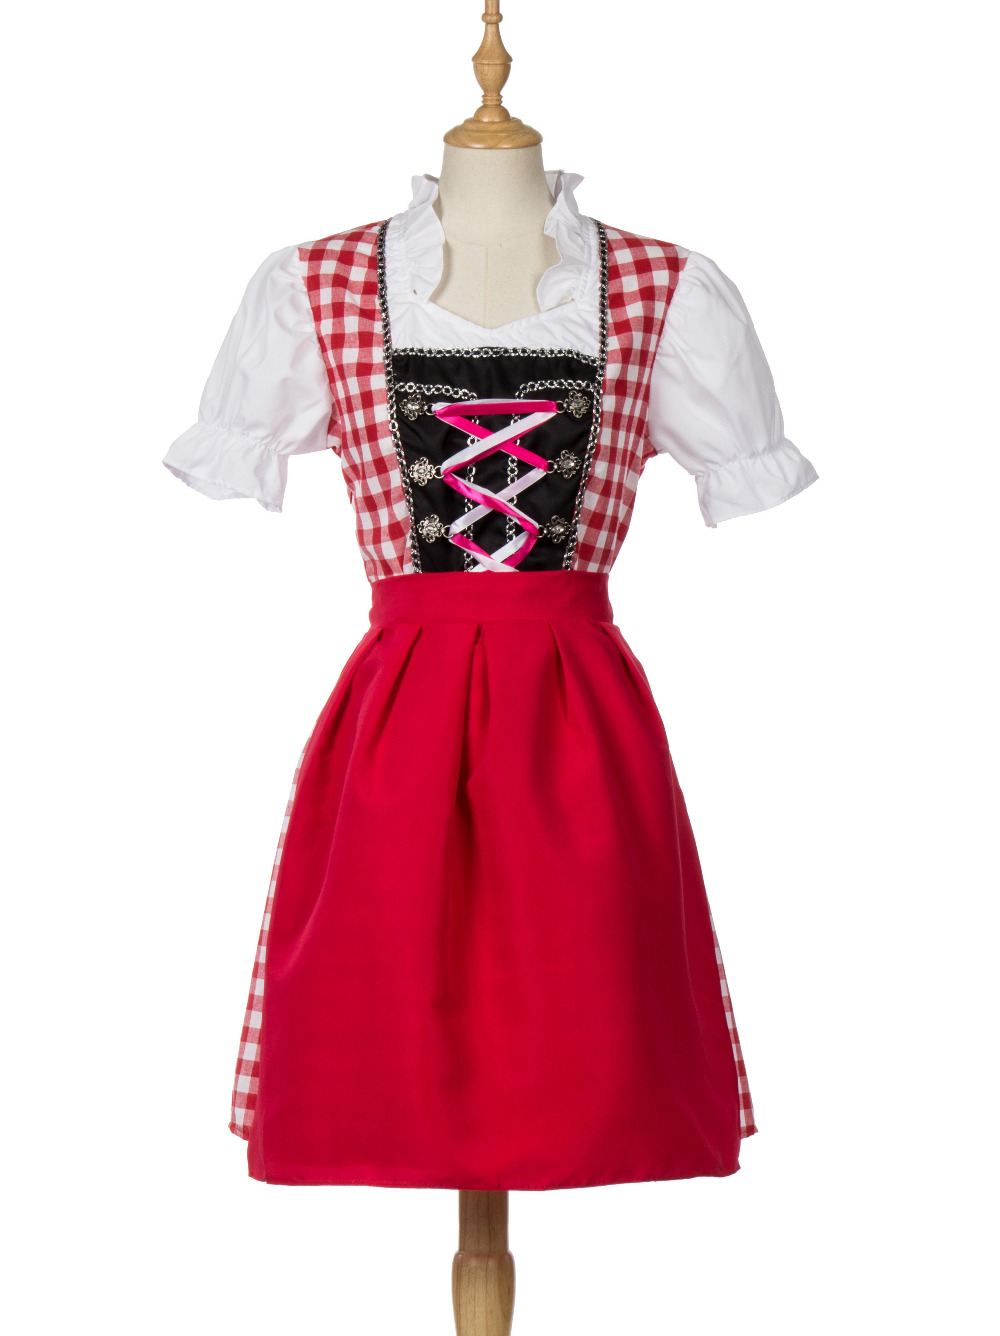 Sexy Germany Bavaria Oktoberfest Dirndl Costumes Beer Girl Women Wench Outfit With Apron